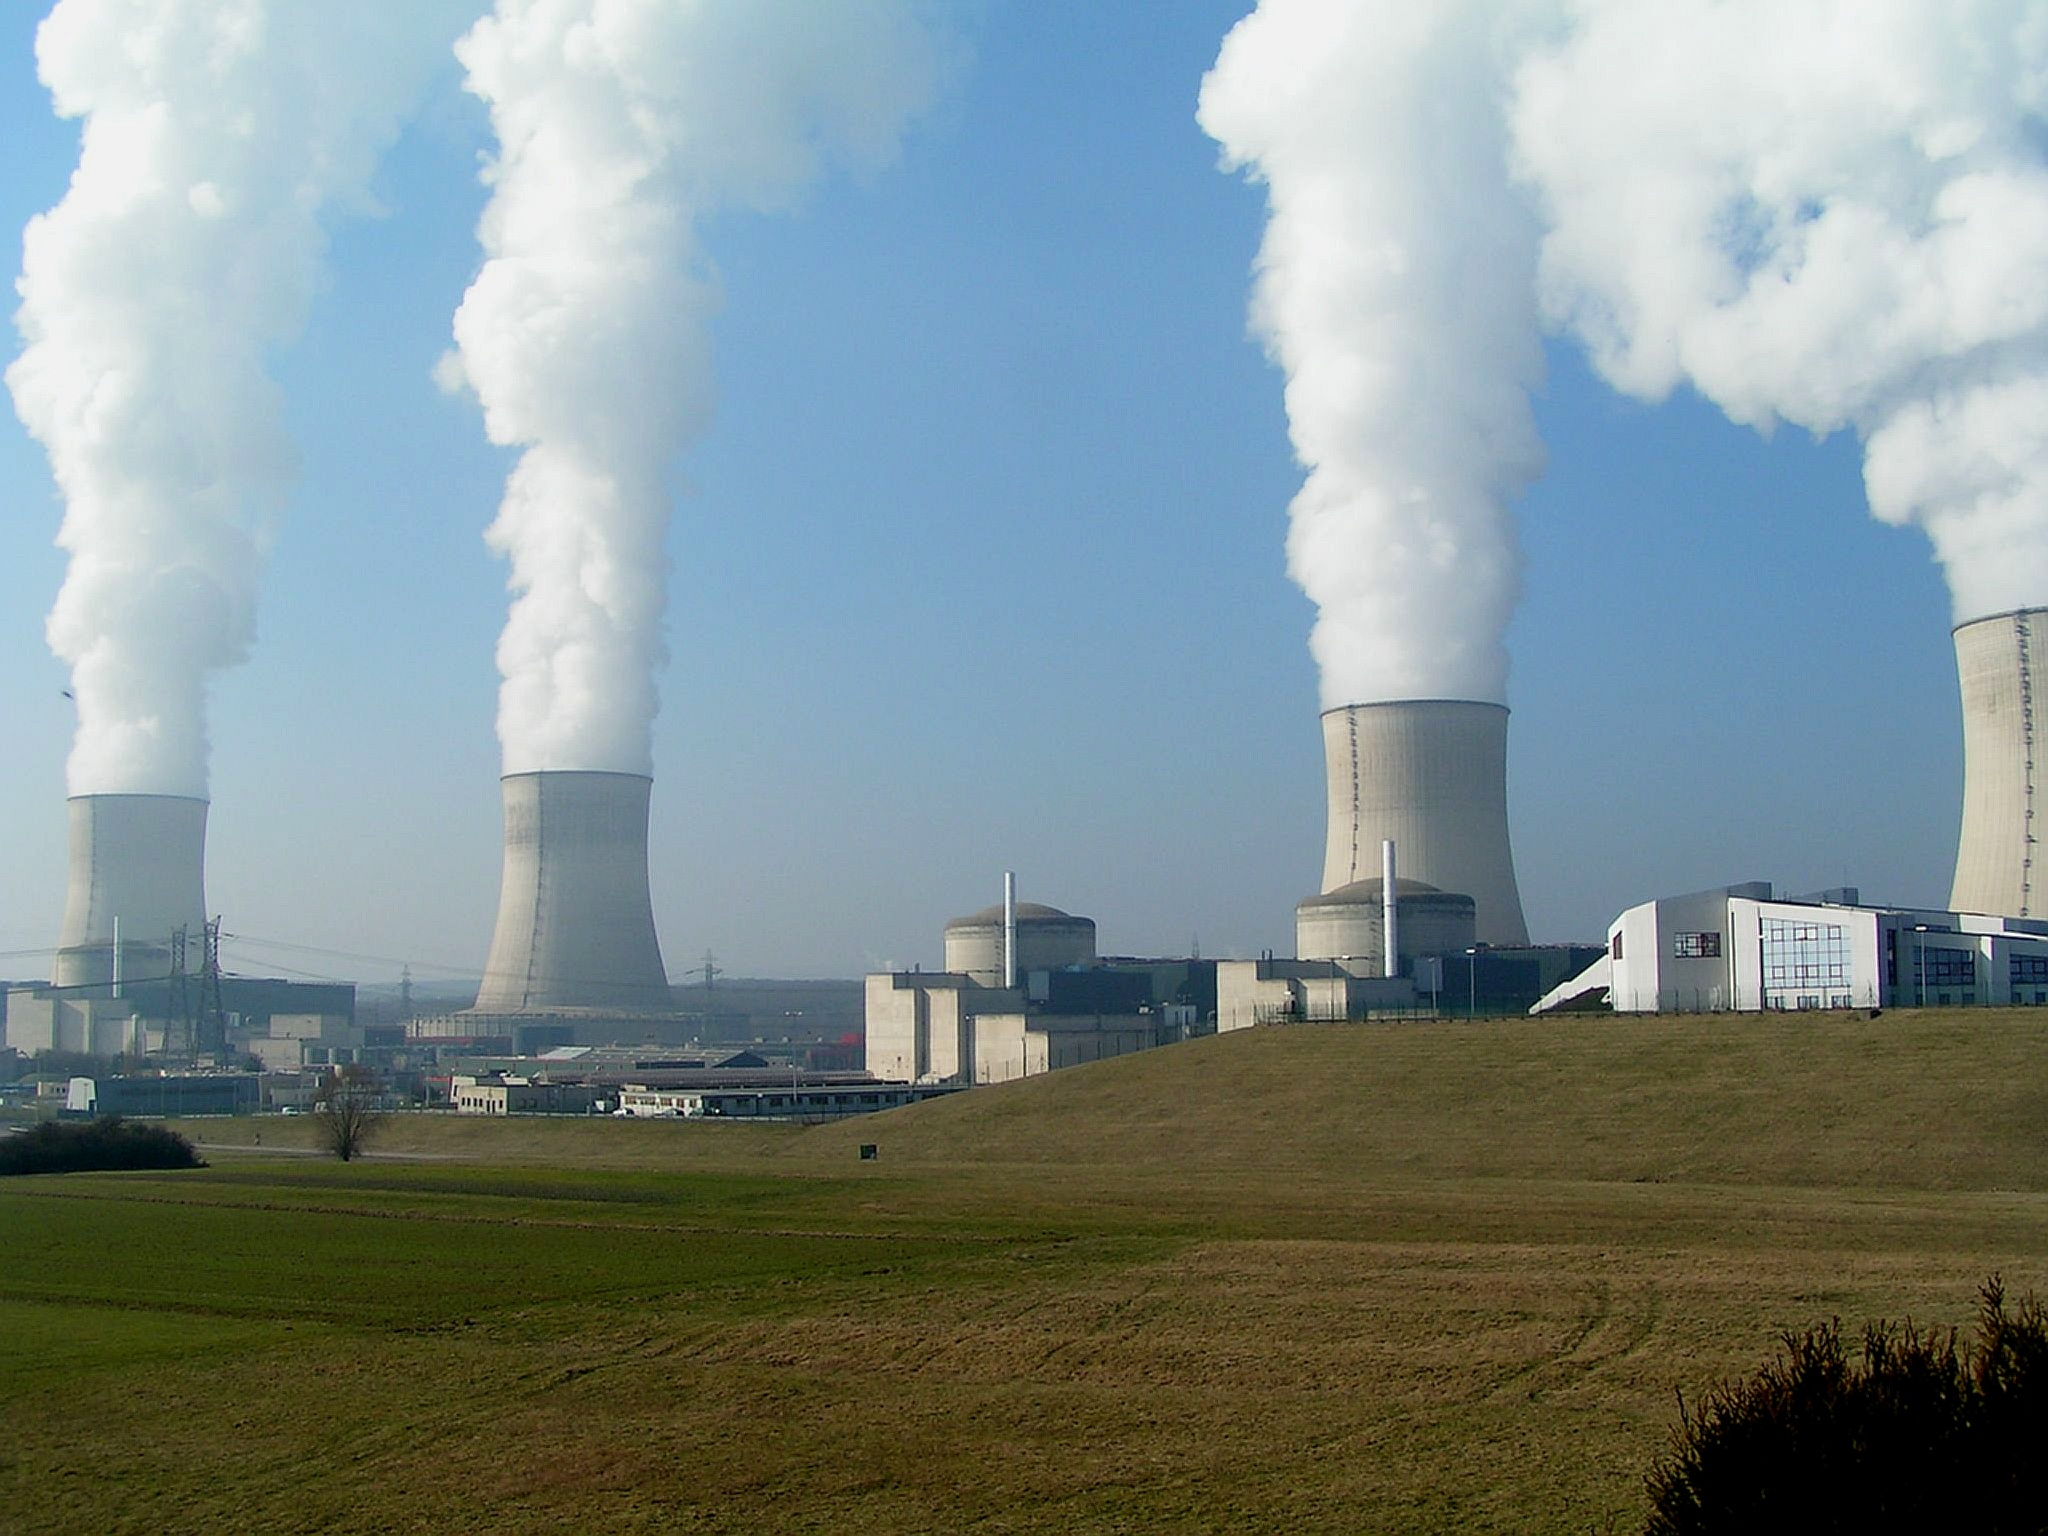 Nuclear_Power_Plant_Cattenom Wikimedia Commons